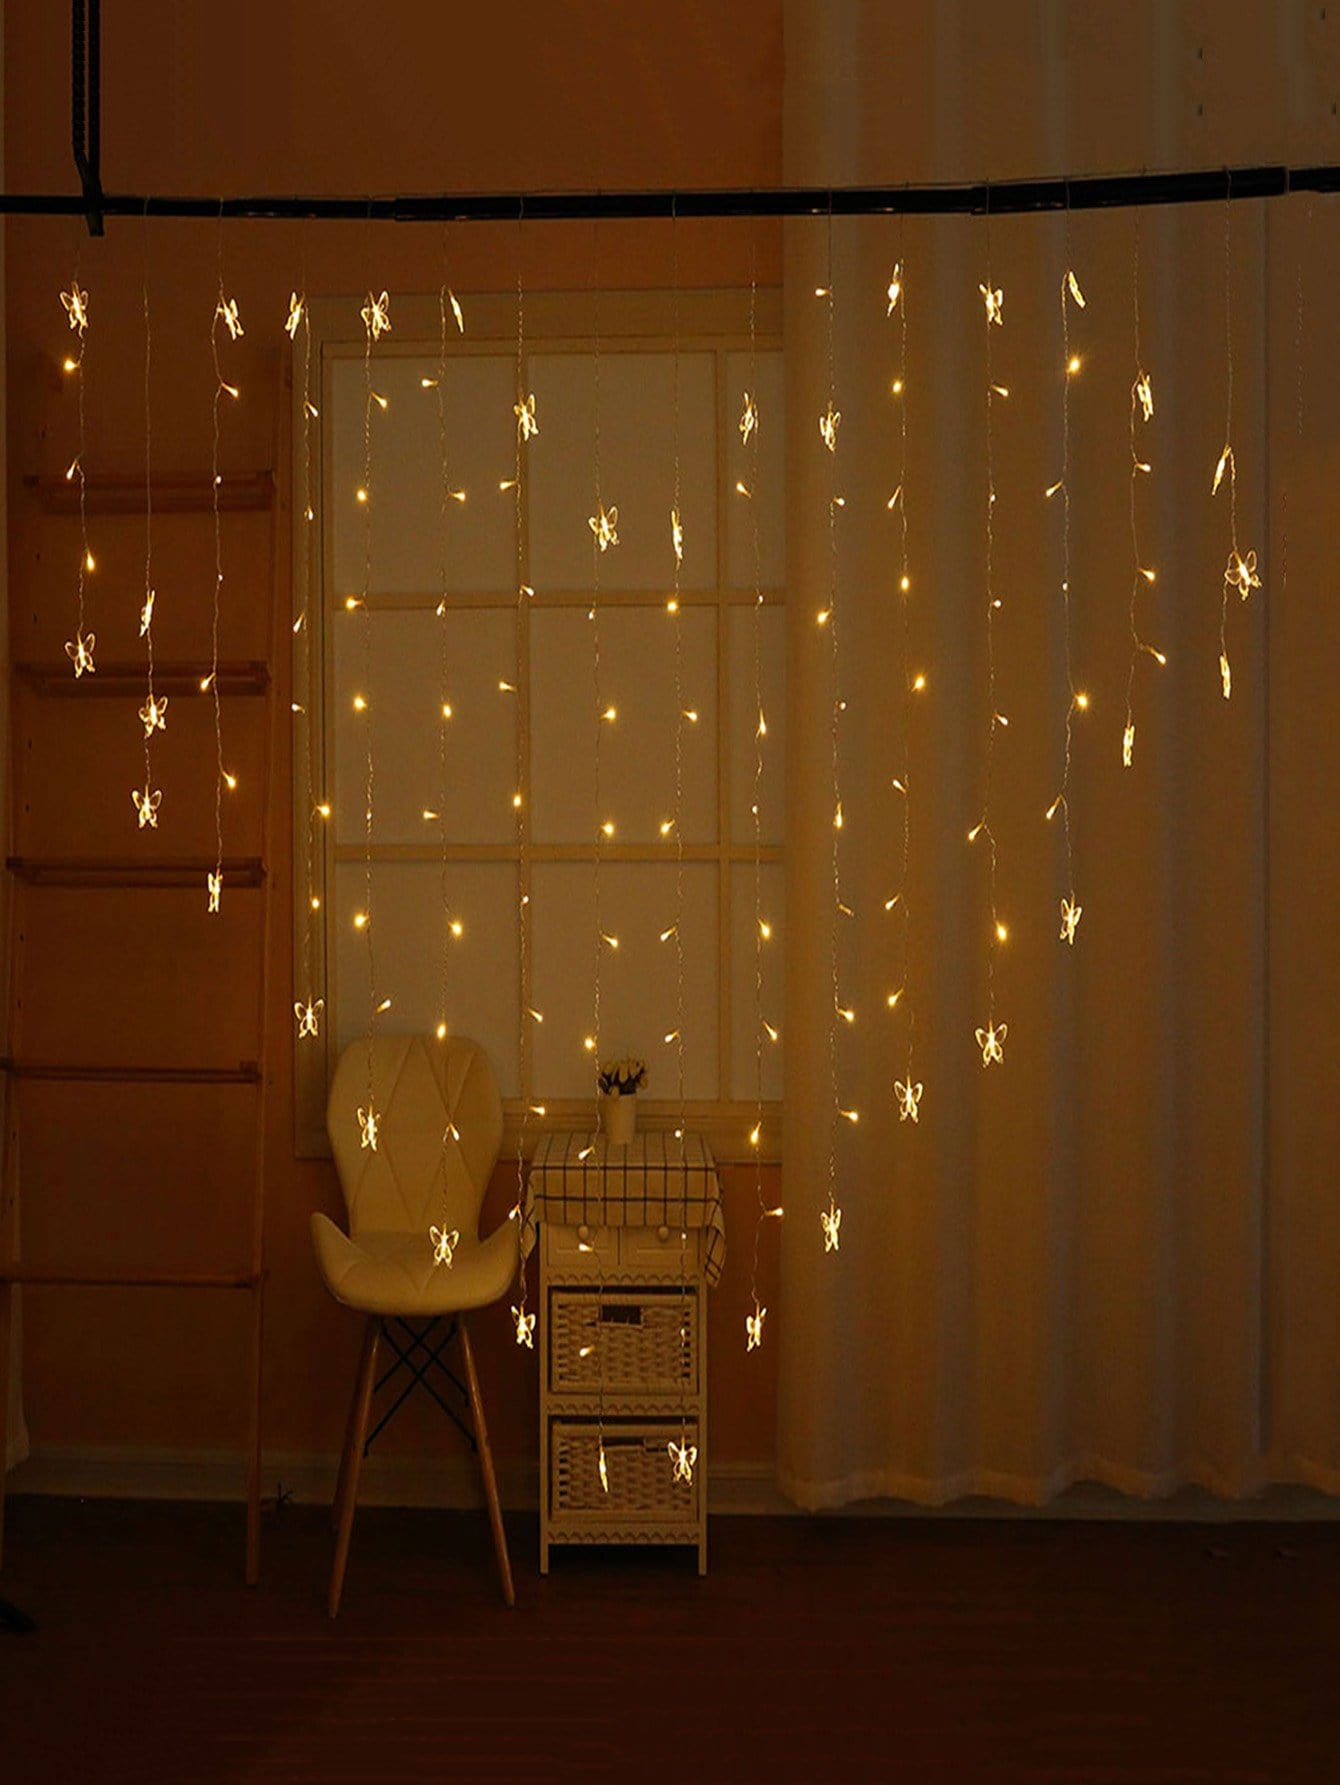 128pcs Bulb Heart Shaped String Light